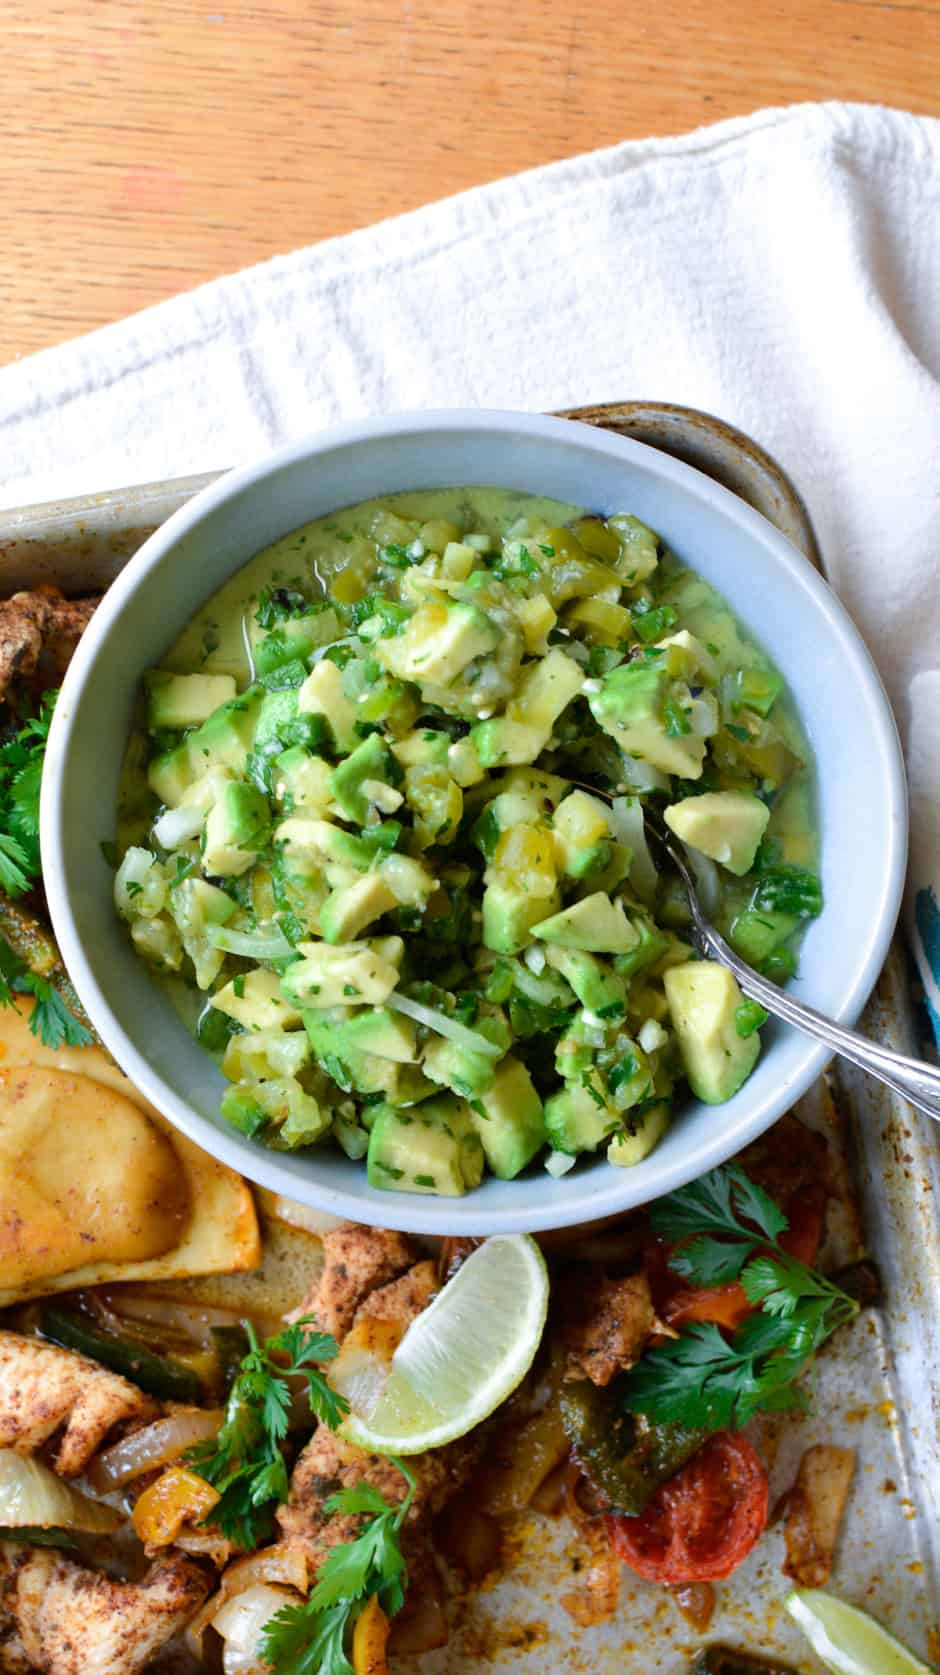 If you've been hunting for an easy Avocado Salsa recipe, look no further! Ripe avocado, fresh cilantro, and lots of spicy jalapeños make this completely irresistible. This avocado salsa is as perfect on a tortilla chip as it is over a piece of grilled salmon. #avocadosalsa #avocados #avocadosalsarecipe #avocadorecipe